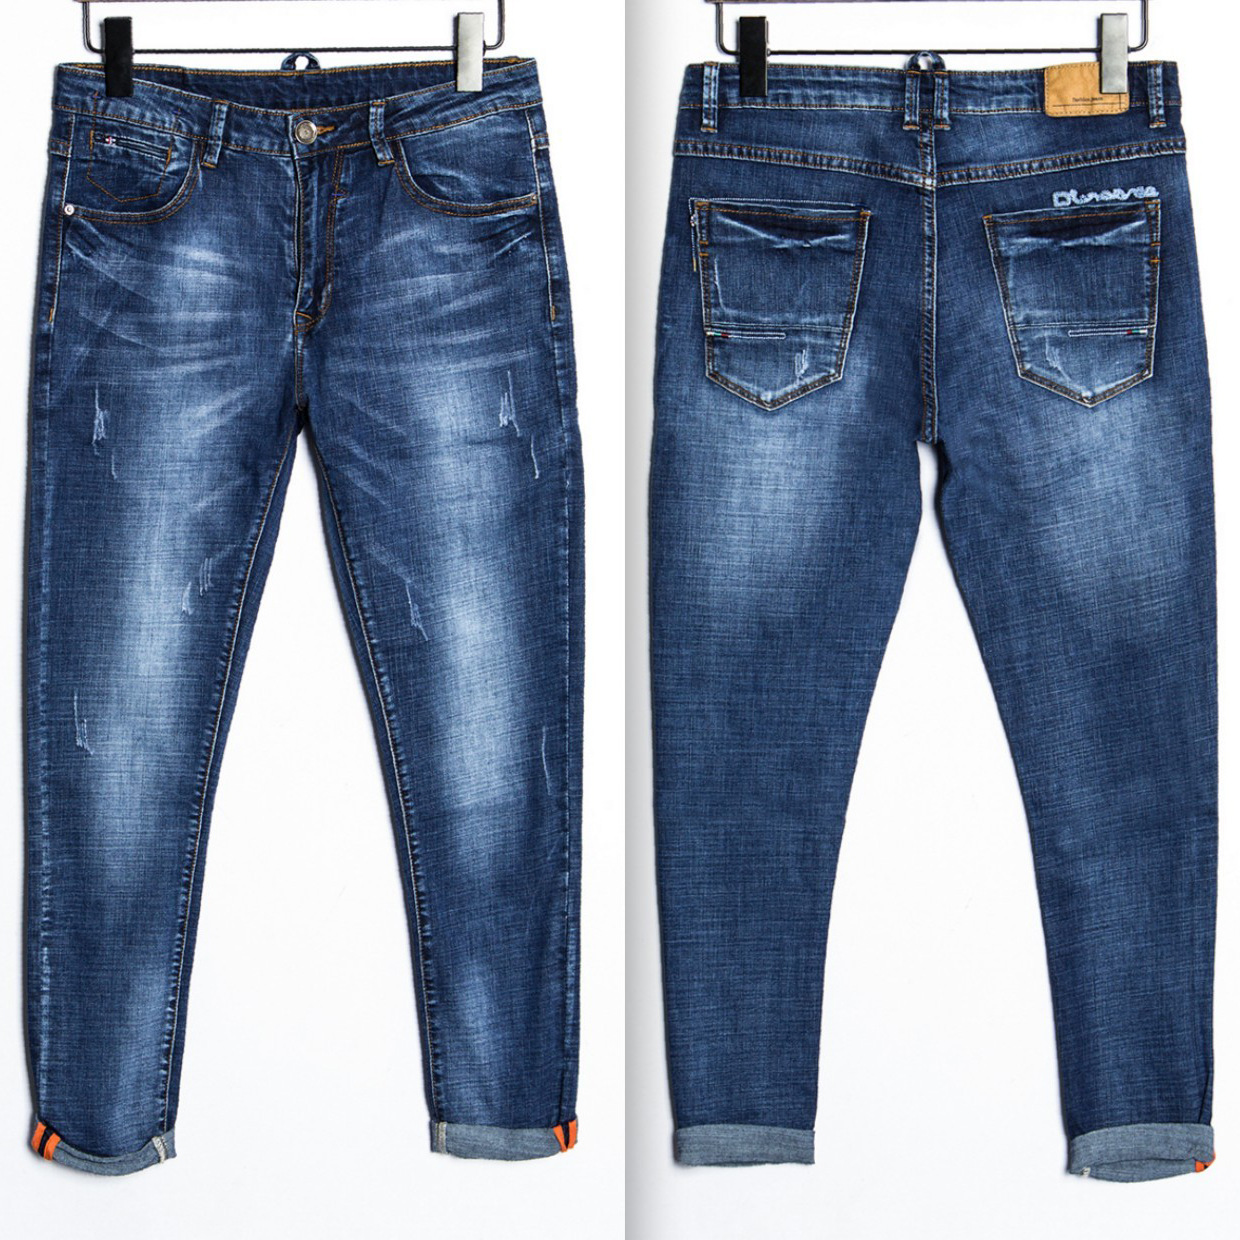 2017 New Arrival Nigrity Zipper Fly Slim Mid Straight Midweight Ankle length Pants Solid Pockets Jeans